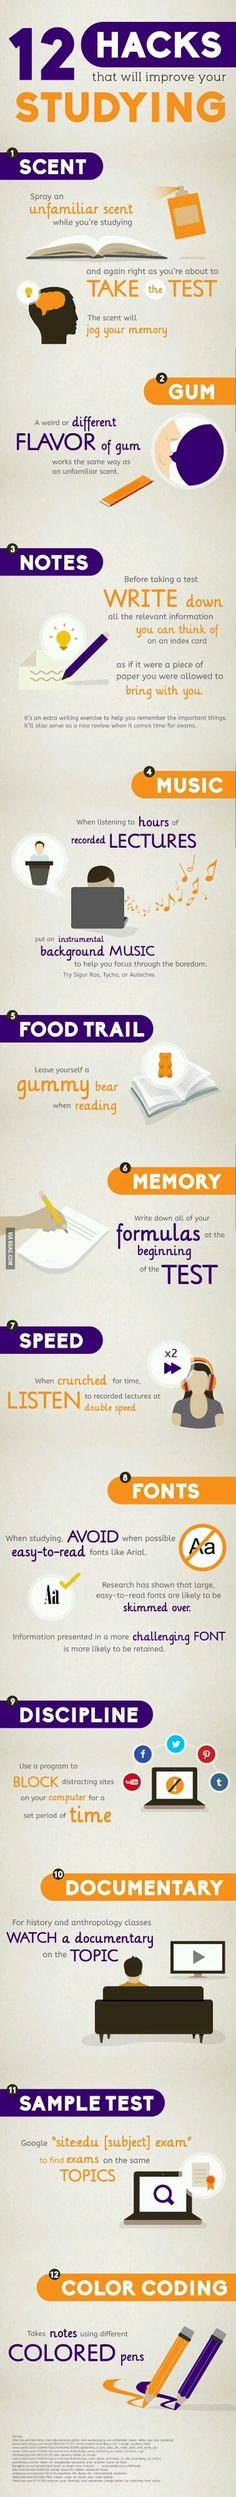 12 hacks to improve ur studying